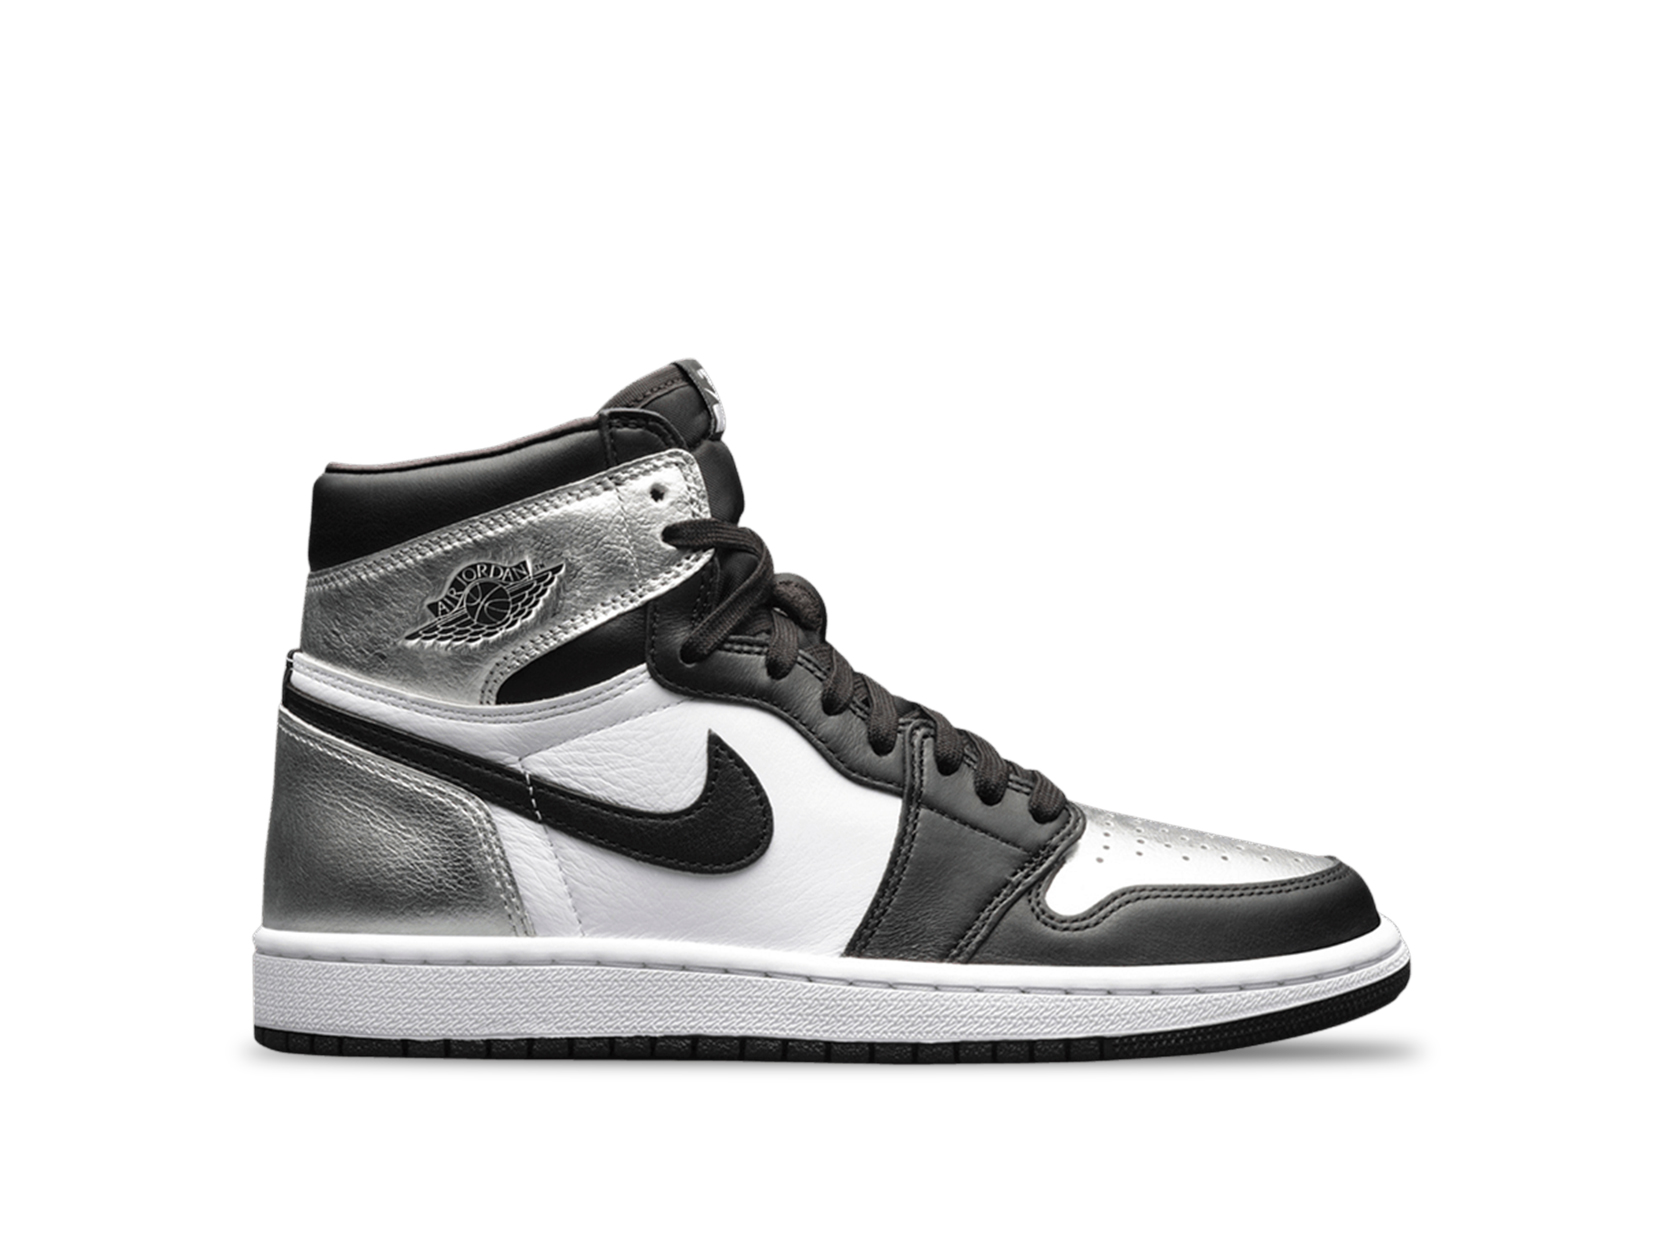 nike air jordans high tops